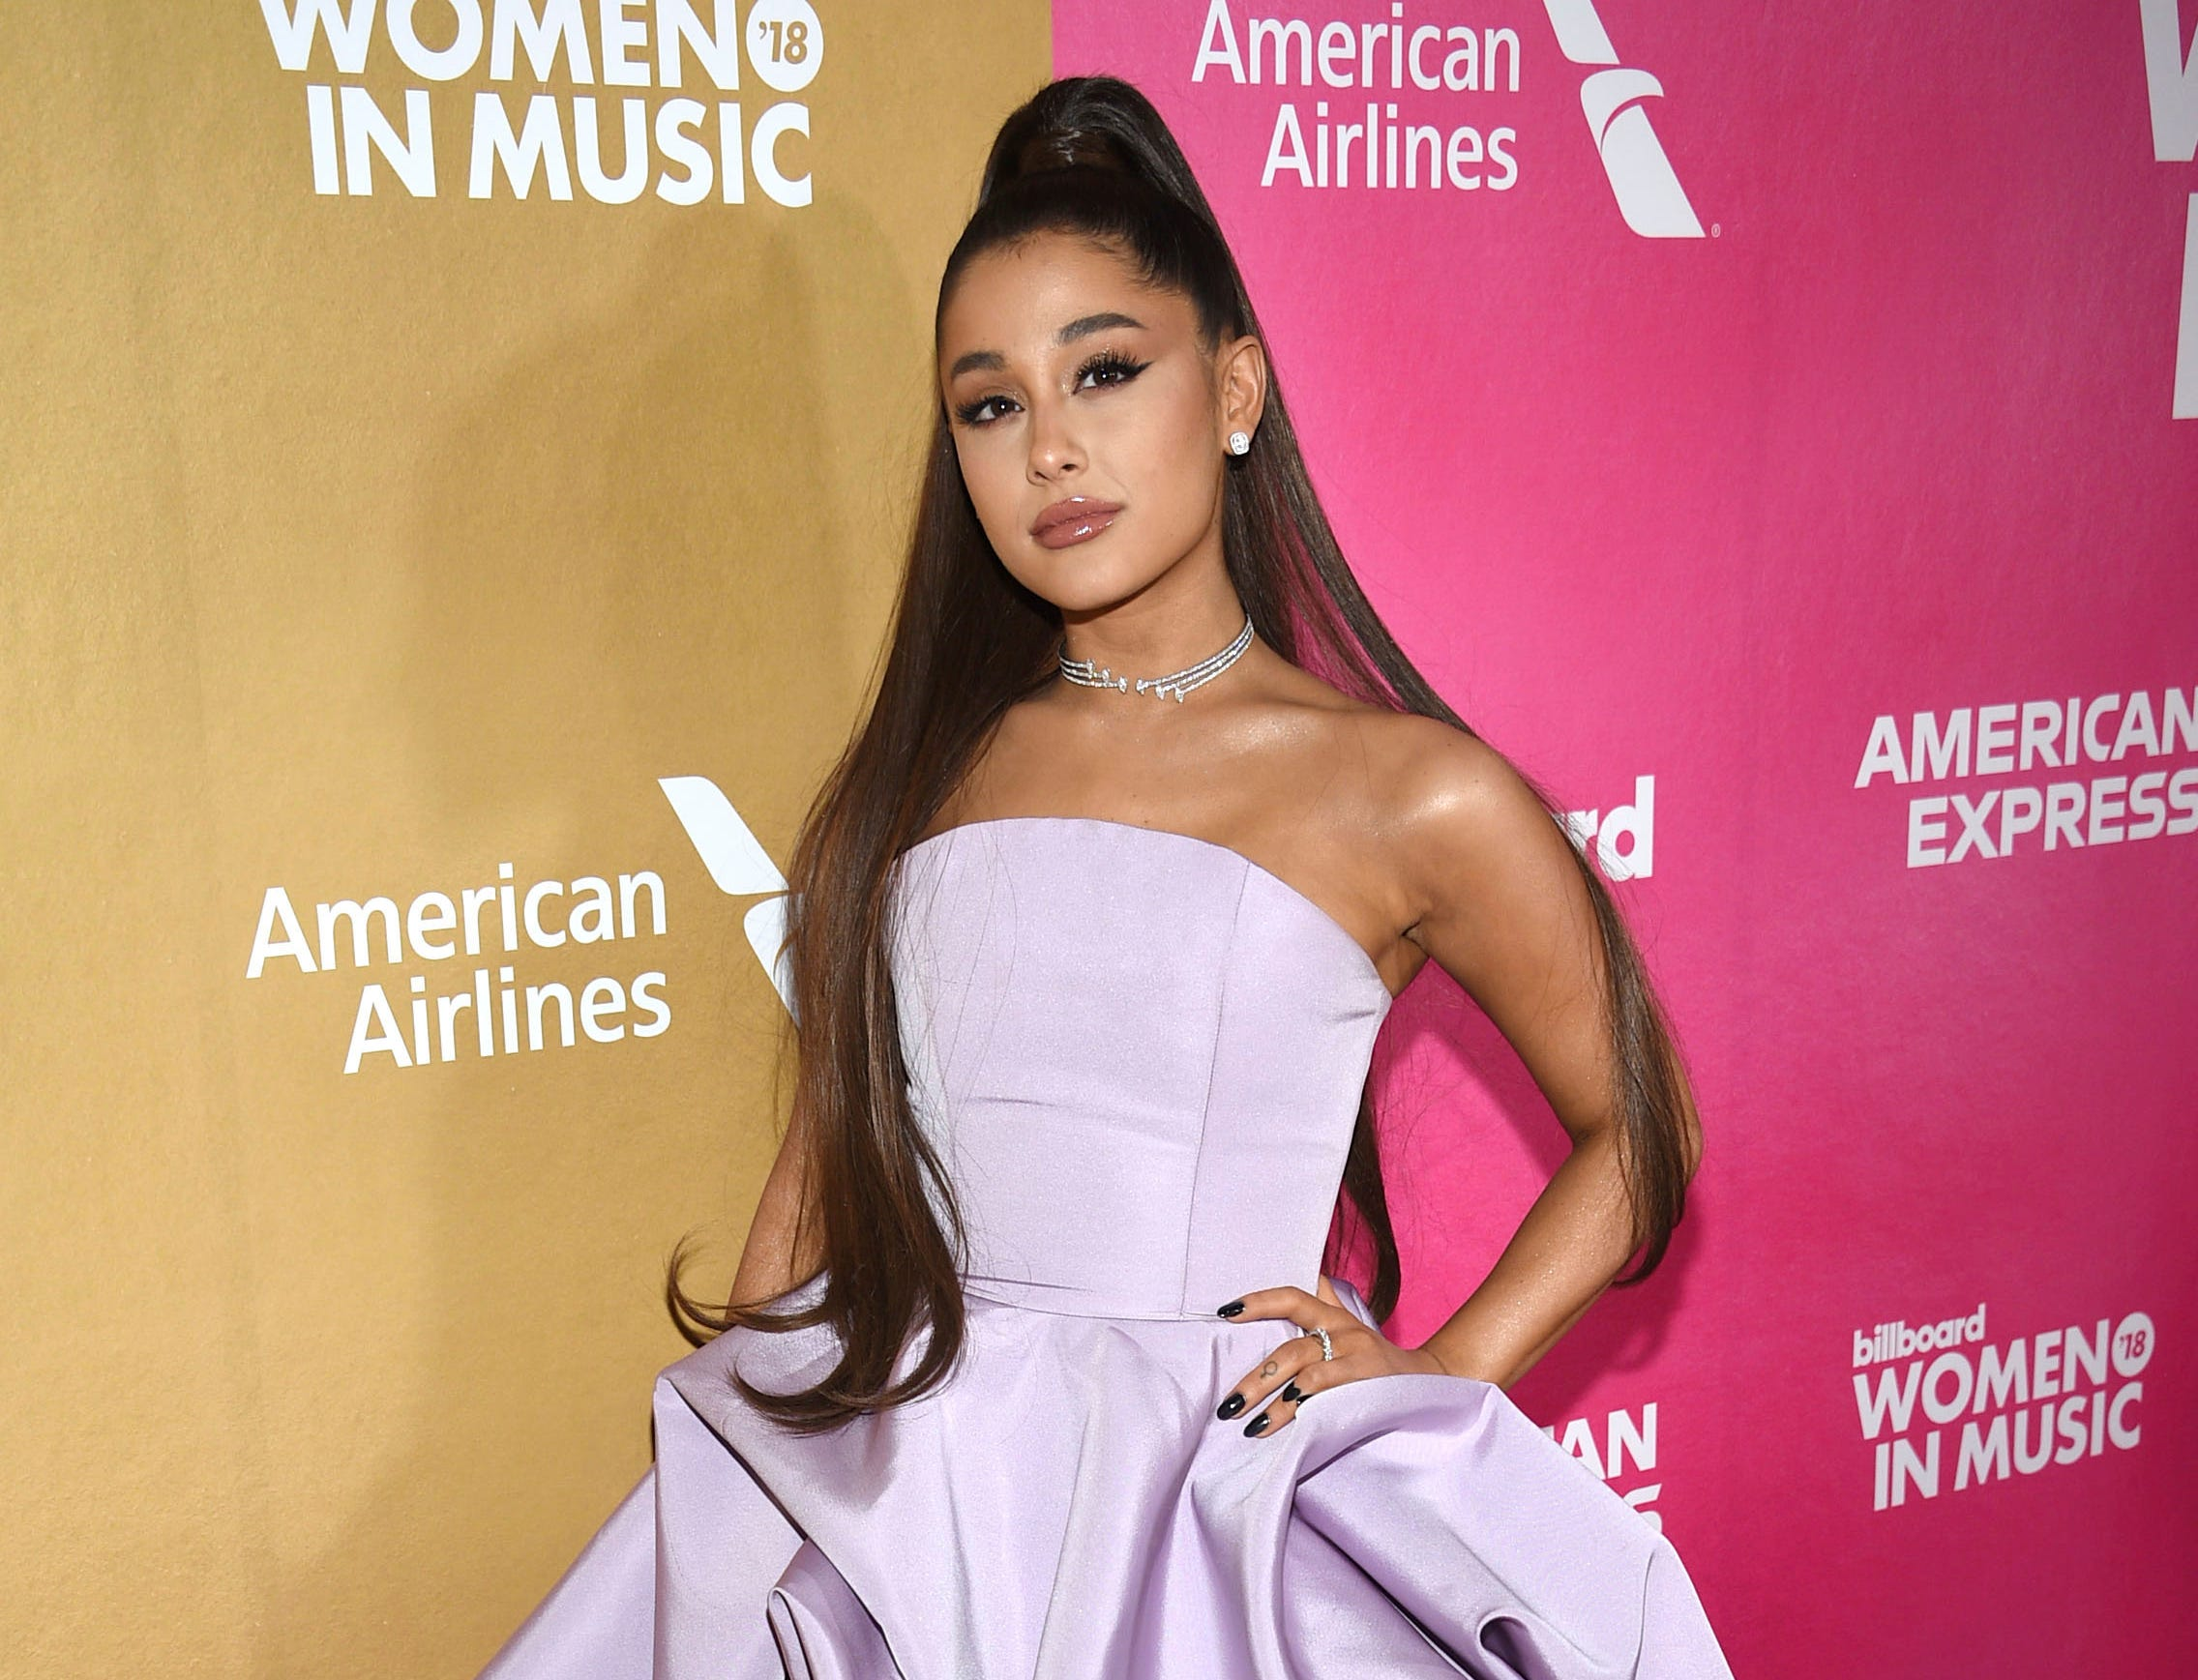 Ariana Grande attends the 13th annual Billboard Women in Music event at Pier 36 on Thursday, Dec. 6, 2018, in New York. (Photo by Evan Agostini/Invision/AP) ORG XMIT: NYBR101